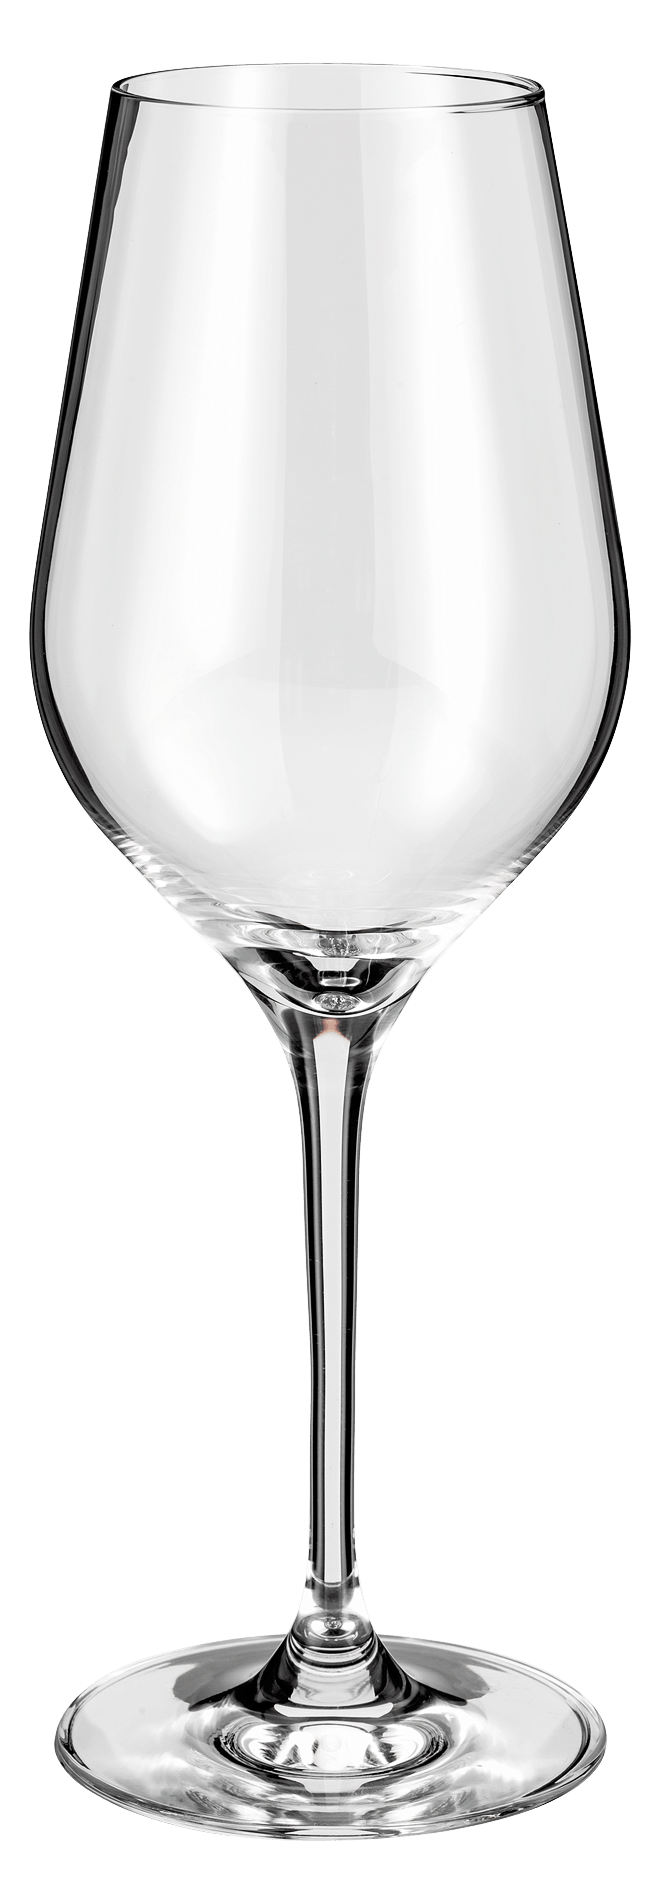 Judge Crystalline Glassware White Wine Glasses